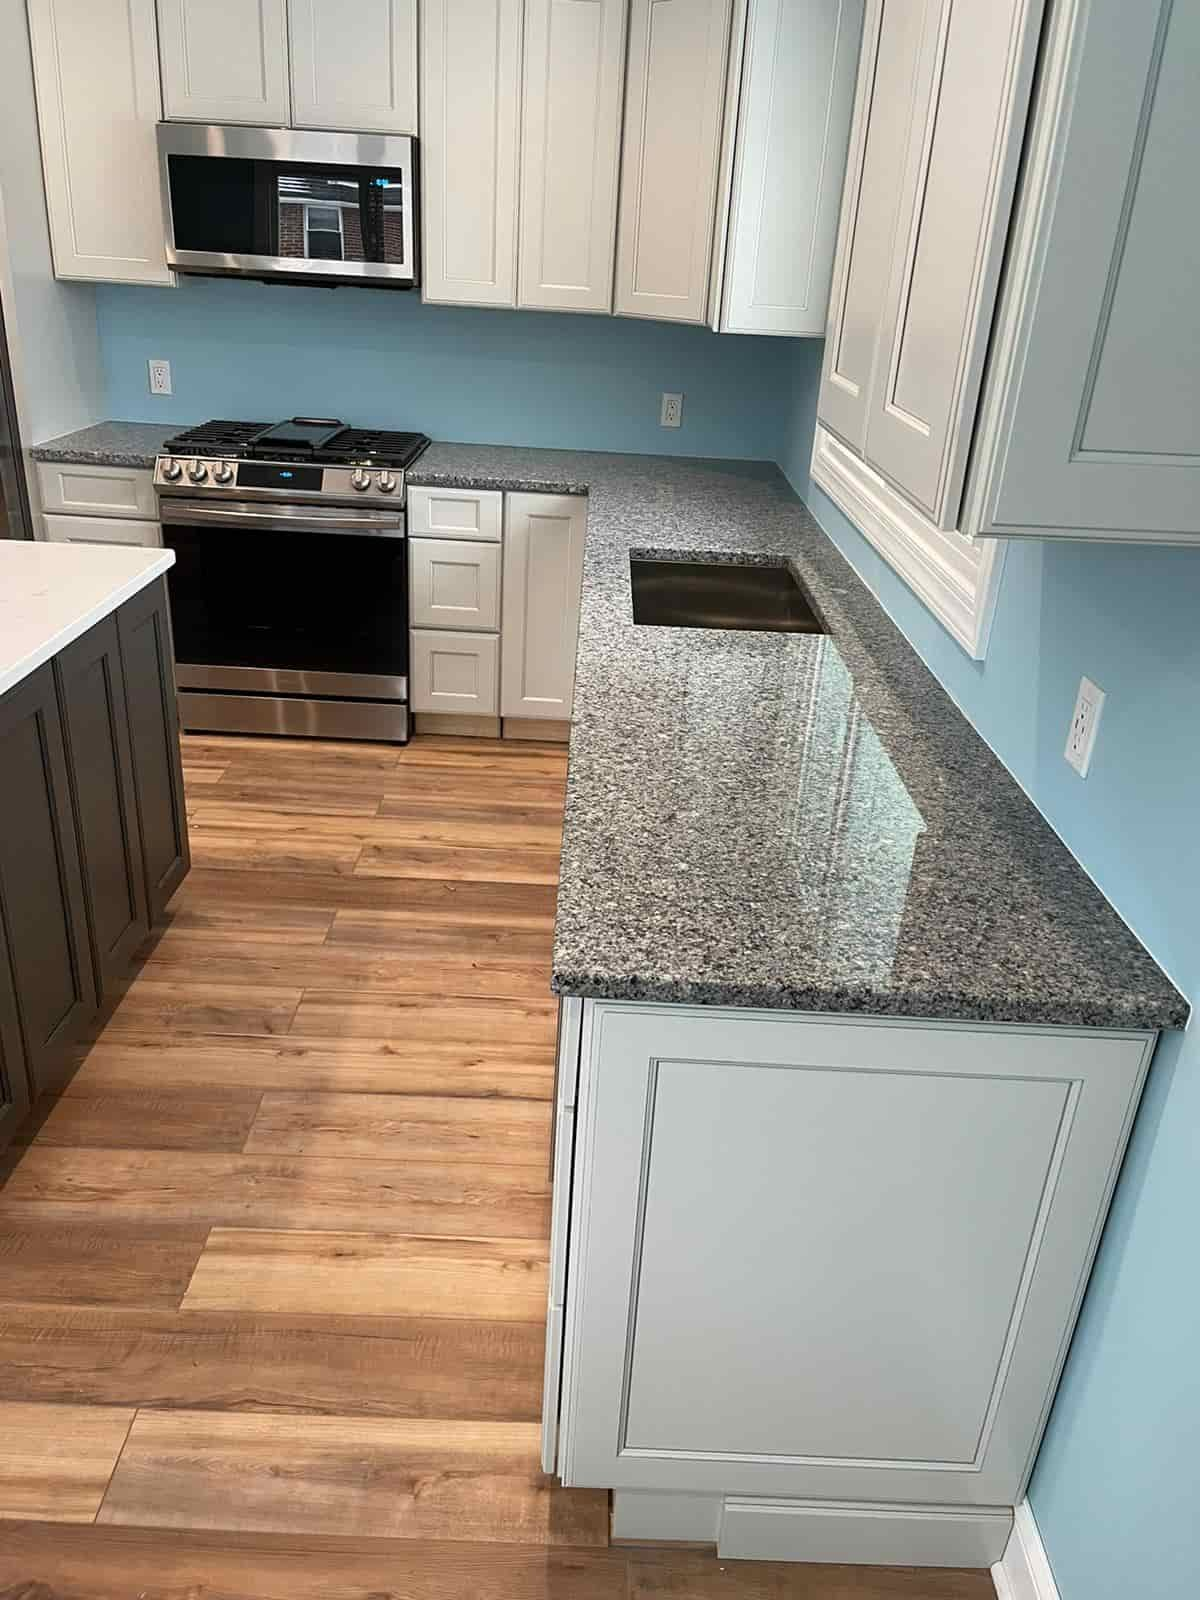 Invest in cabinets and countertops